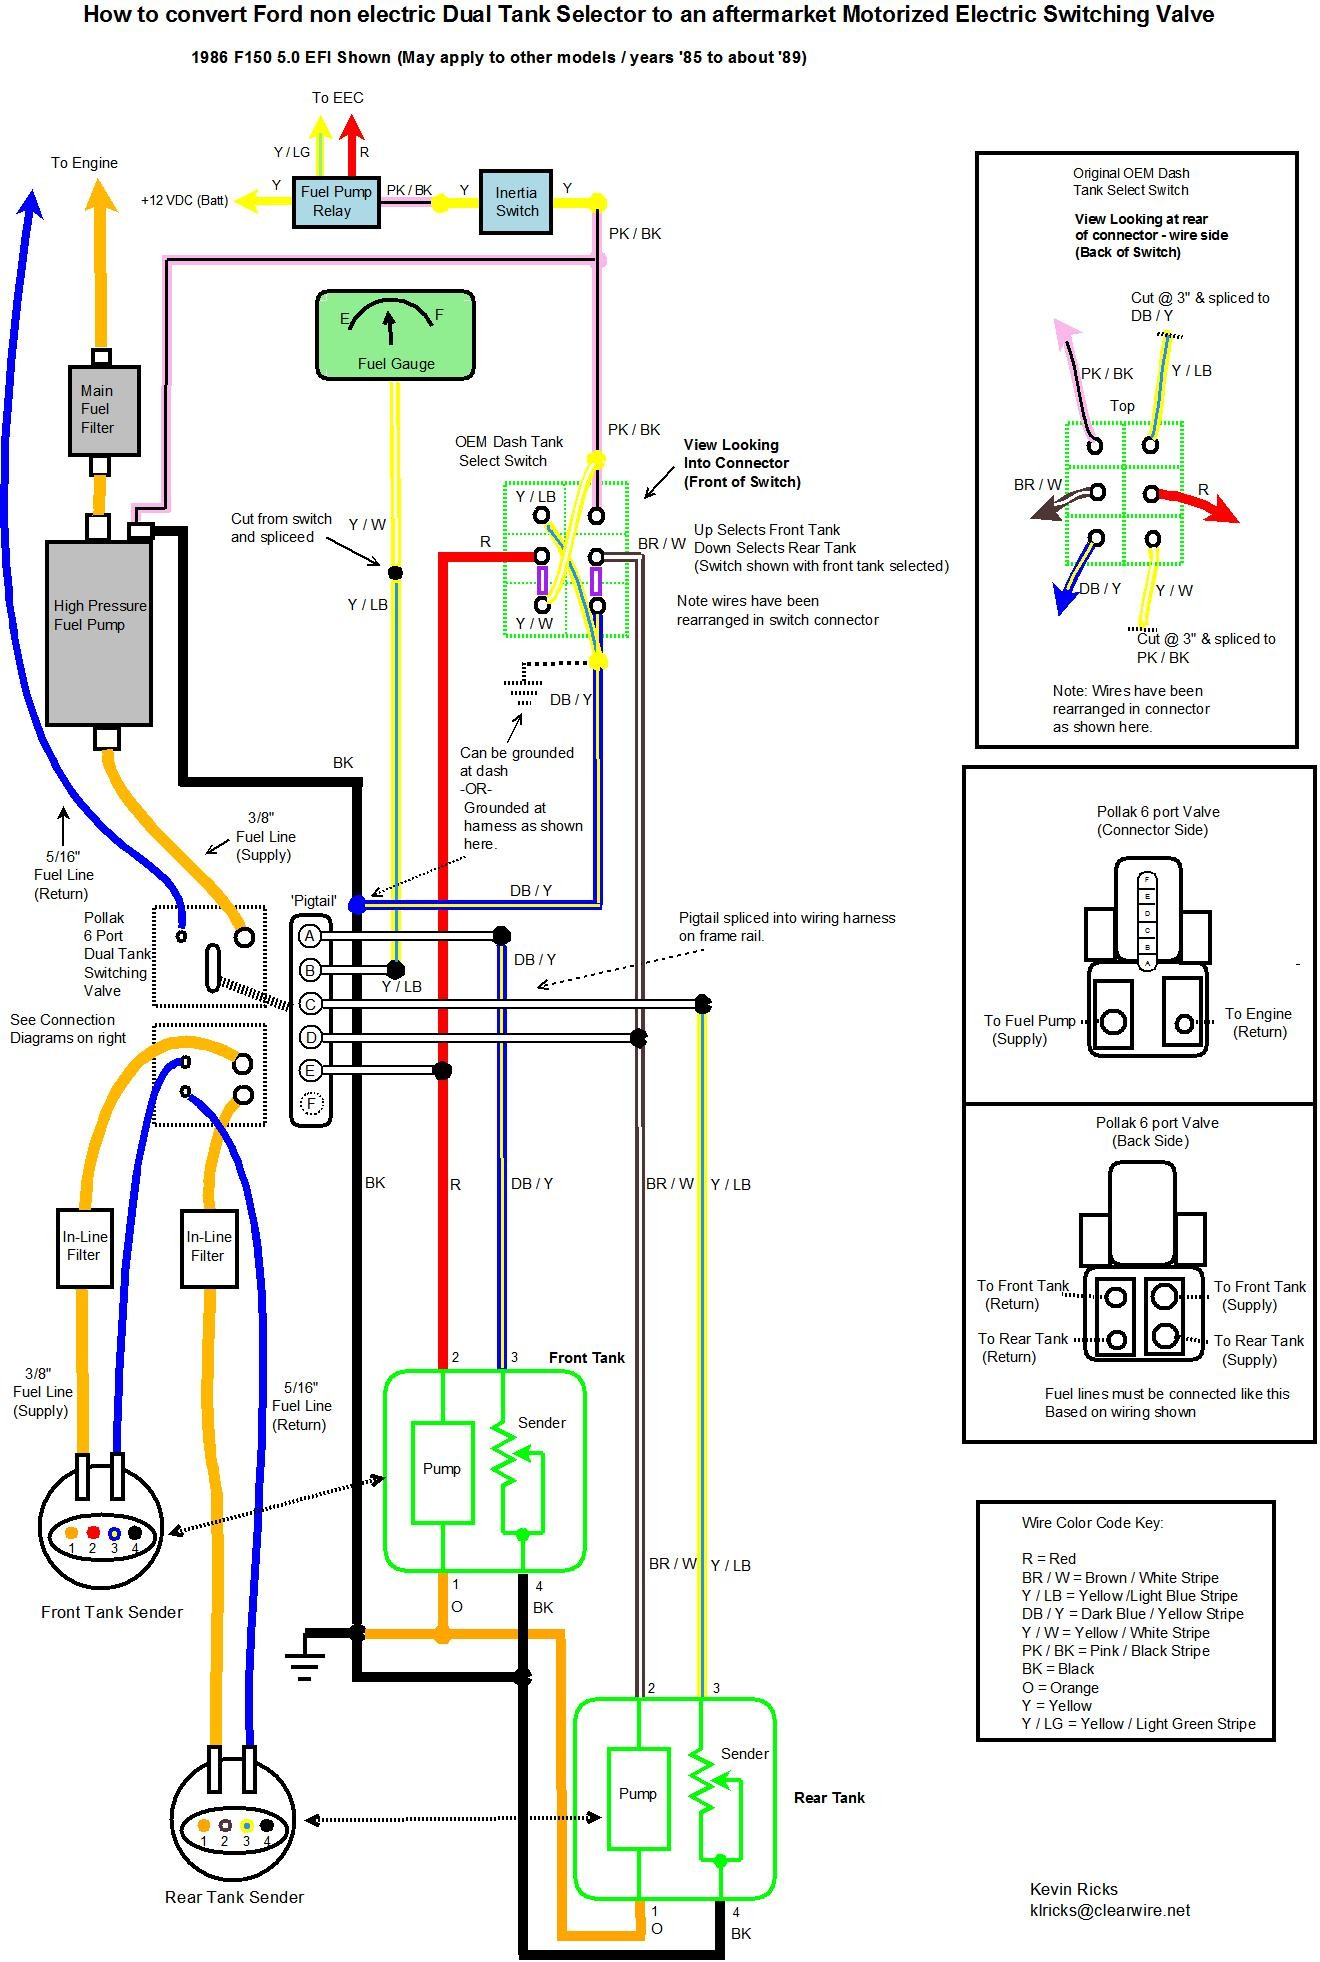 1995 ford F150 5 0 Engine Diagram Panel Diagram 1997 ford 1988 ford F150 Fuel Pump Wiring Diagram More Of 1995 ford F150 5 0 Engine Diagram